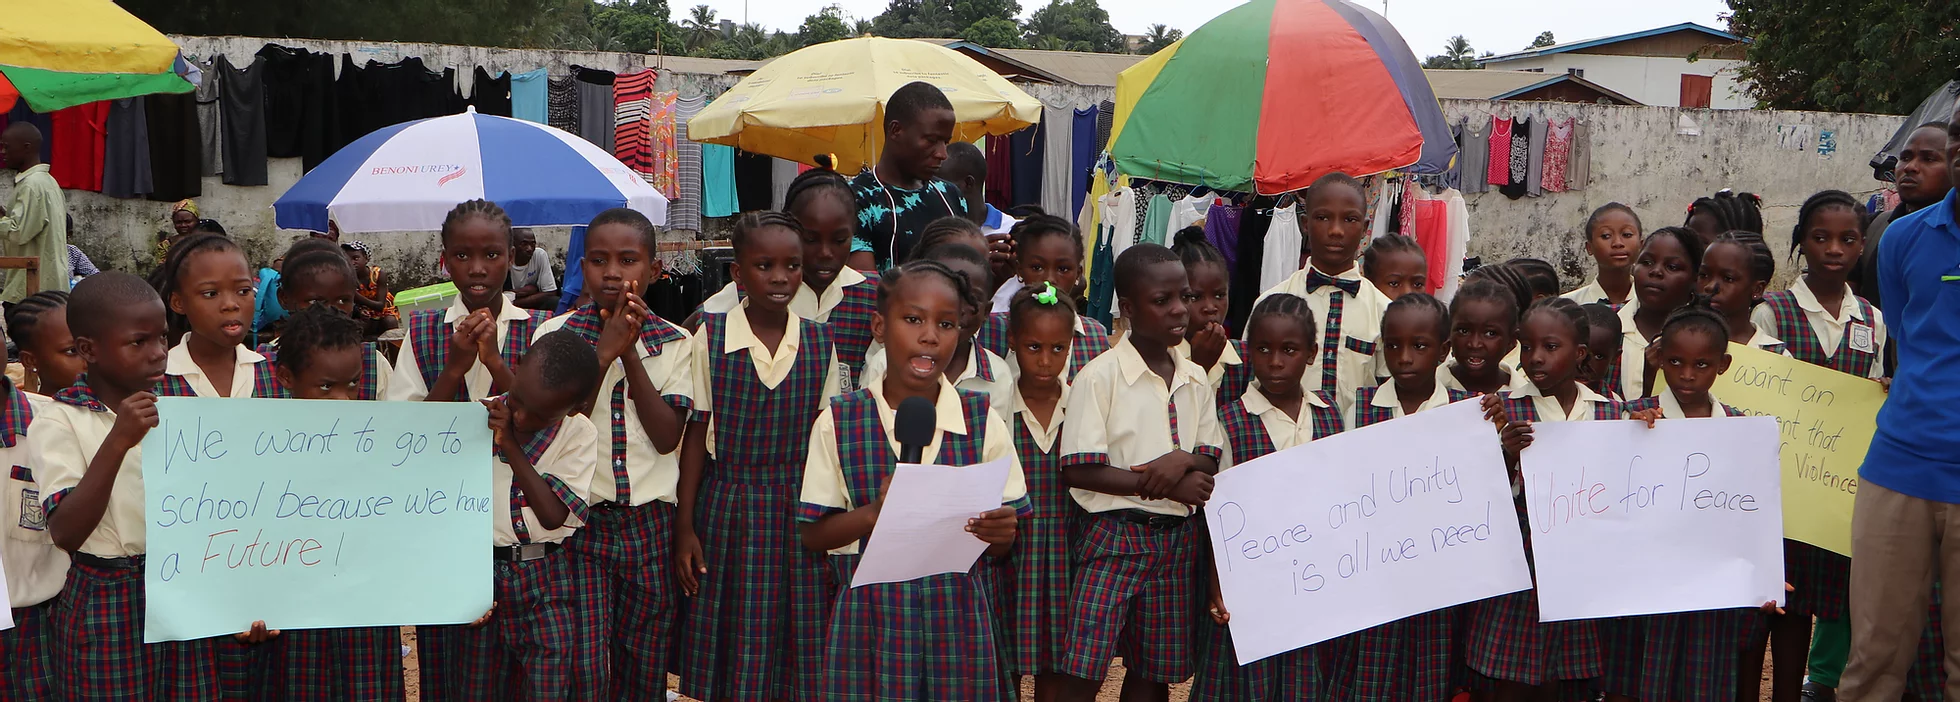 A group of children in Liberia addressing the camera with signs and speaking into the microphone.